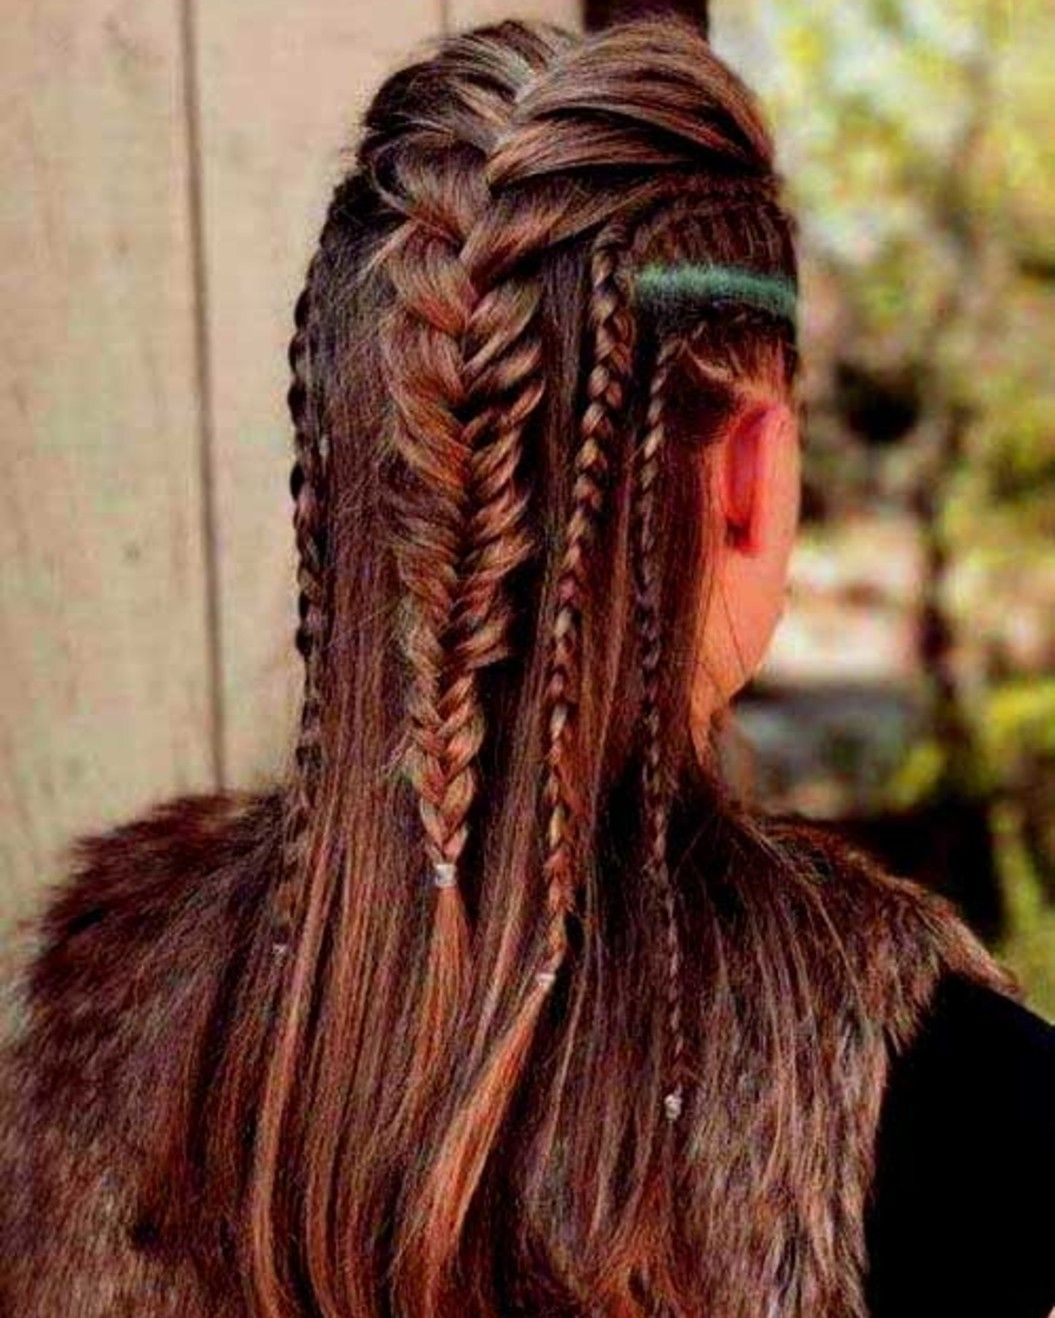 viking hair ♥ | hair in 2019 | viking hair, hair styles